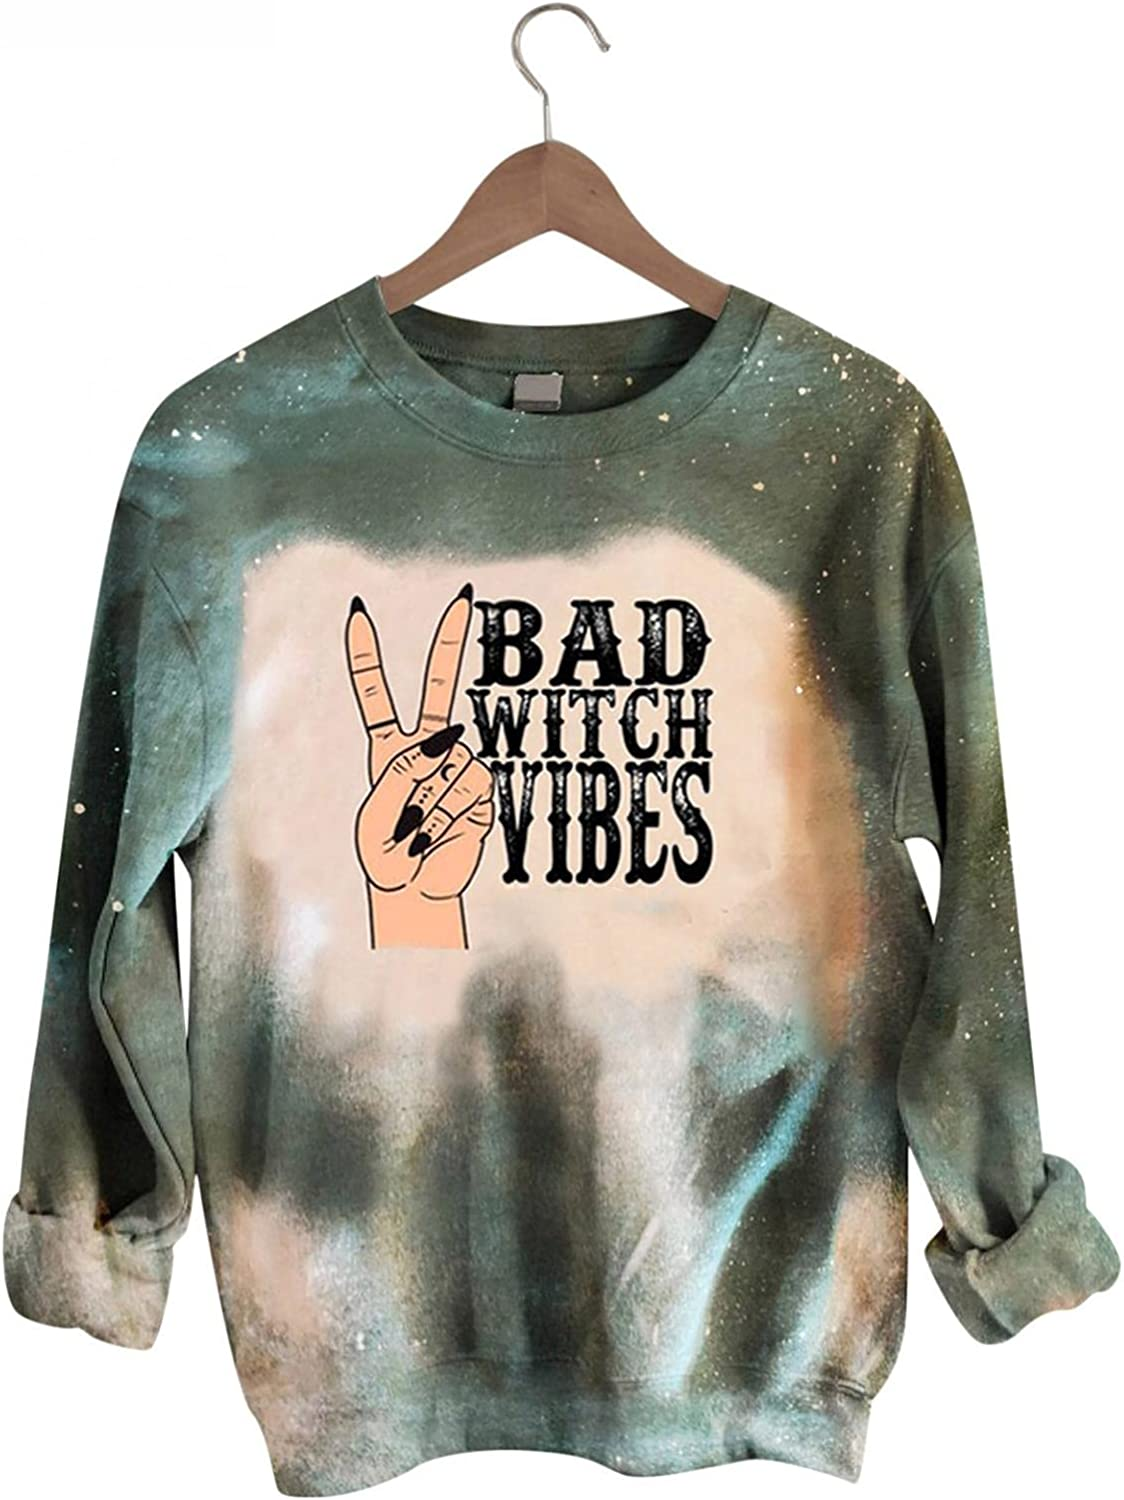 AODONG Sweaters for Women Casual Rainbow Tie Dye Long Sleeves Sweatshirts Fashion Crewneck Loose Fit Pullover Tops